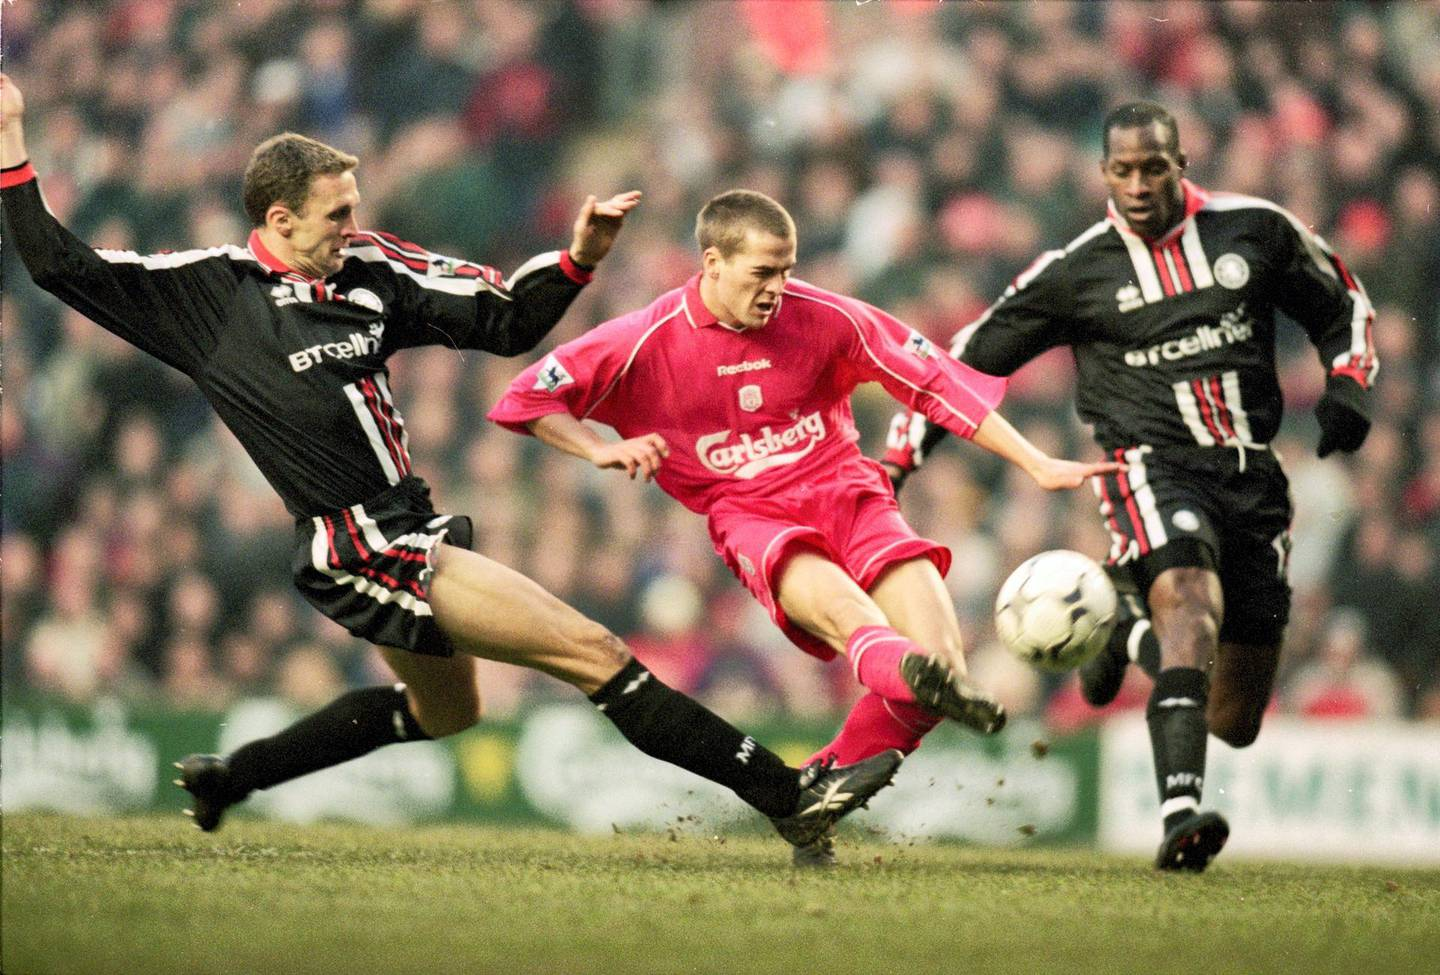 20 Jan 2001:  Michael Owen of Liverpool is closed down by Steve Vickers and Ugo Ehiogu of Middlesbrough during the FA Carling Premier League match played at Anfield in Liverpool, England. The game ended in a 0-0 draw. \ Mandatory Credit: Gary M Prior/Allsport